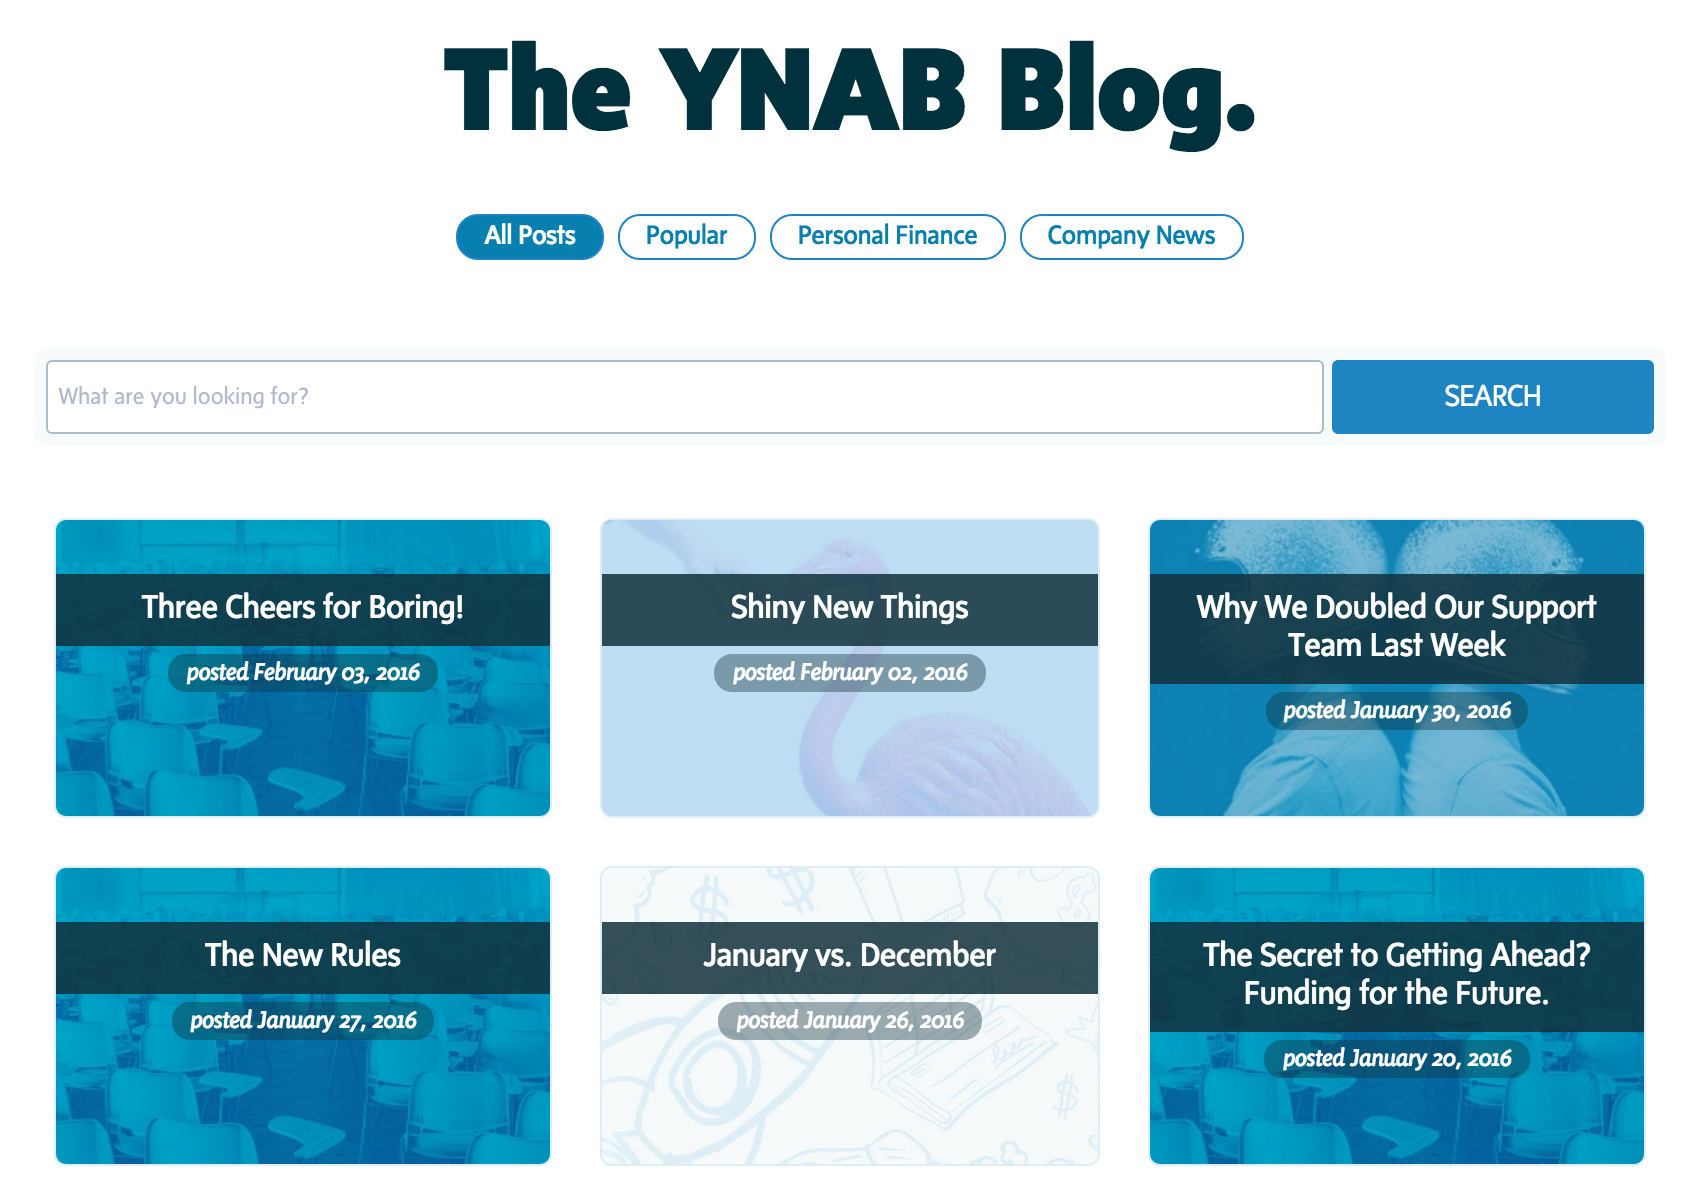 YNAB: How a Self-Funded Budgeting Startup Built a Community